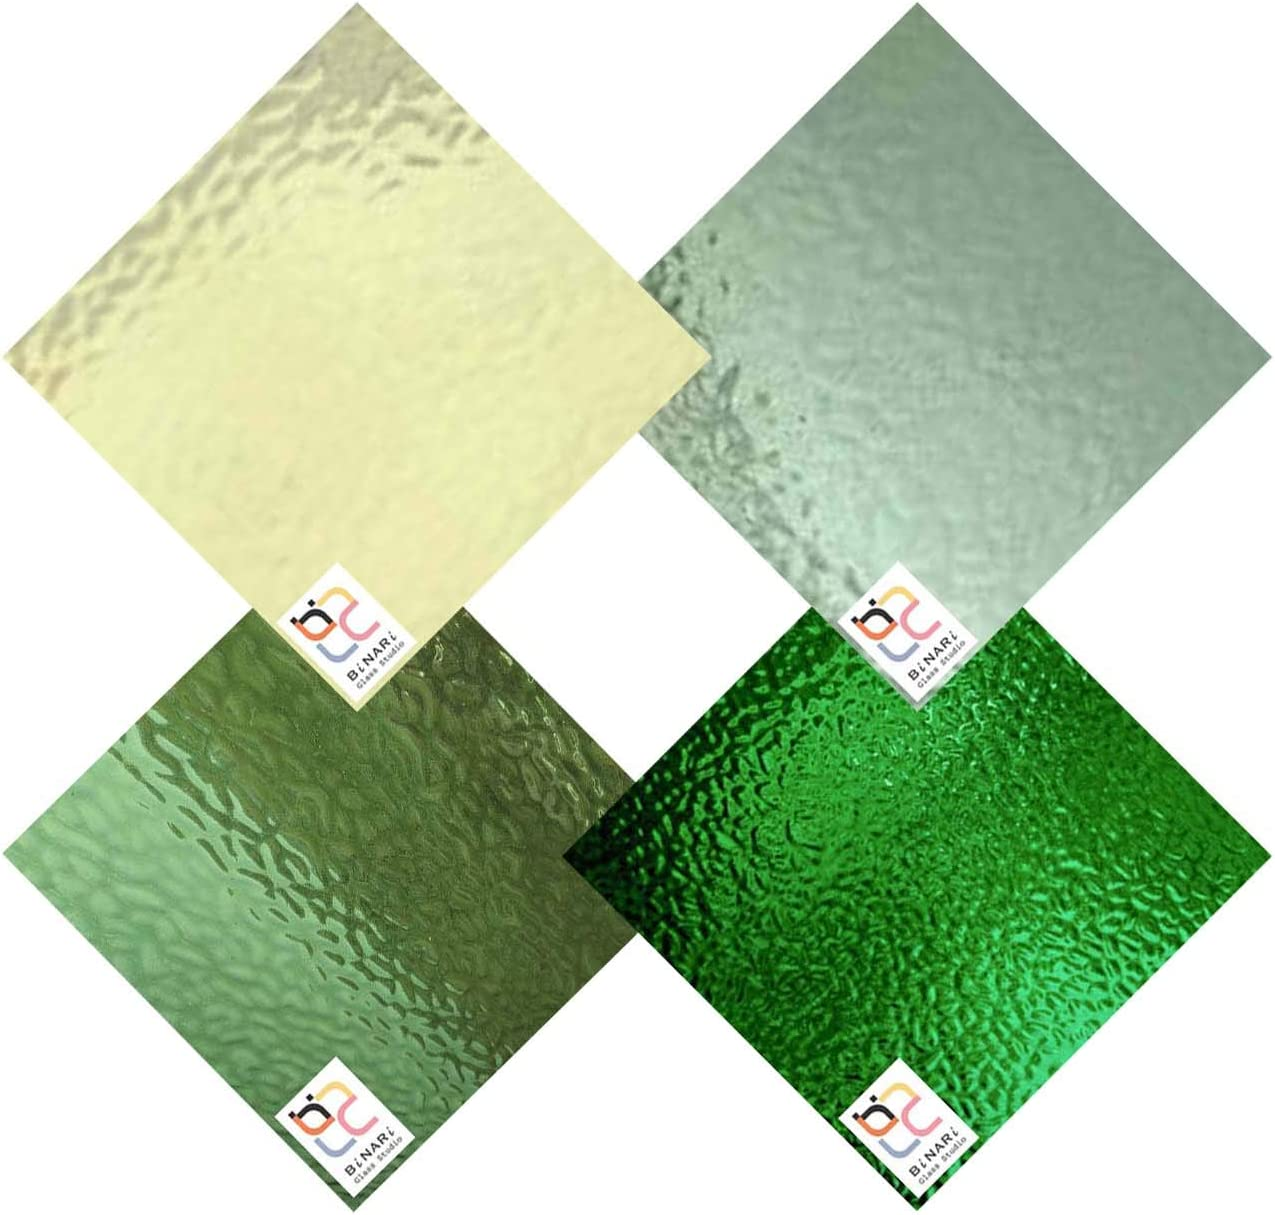 Wissmach We OFFer at cheap prices 4 Sheet Mixed Color Glass Pack Green Stained Variety Ranking TOP20